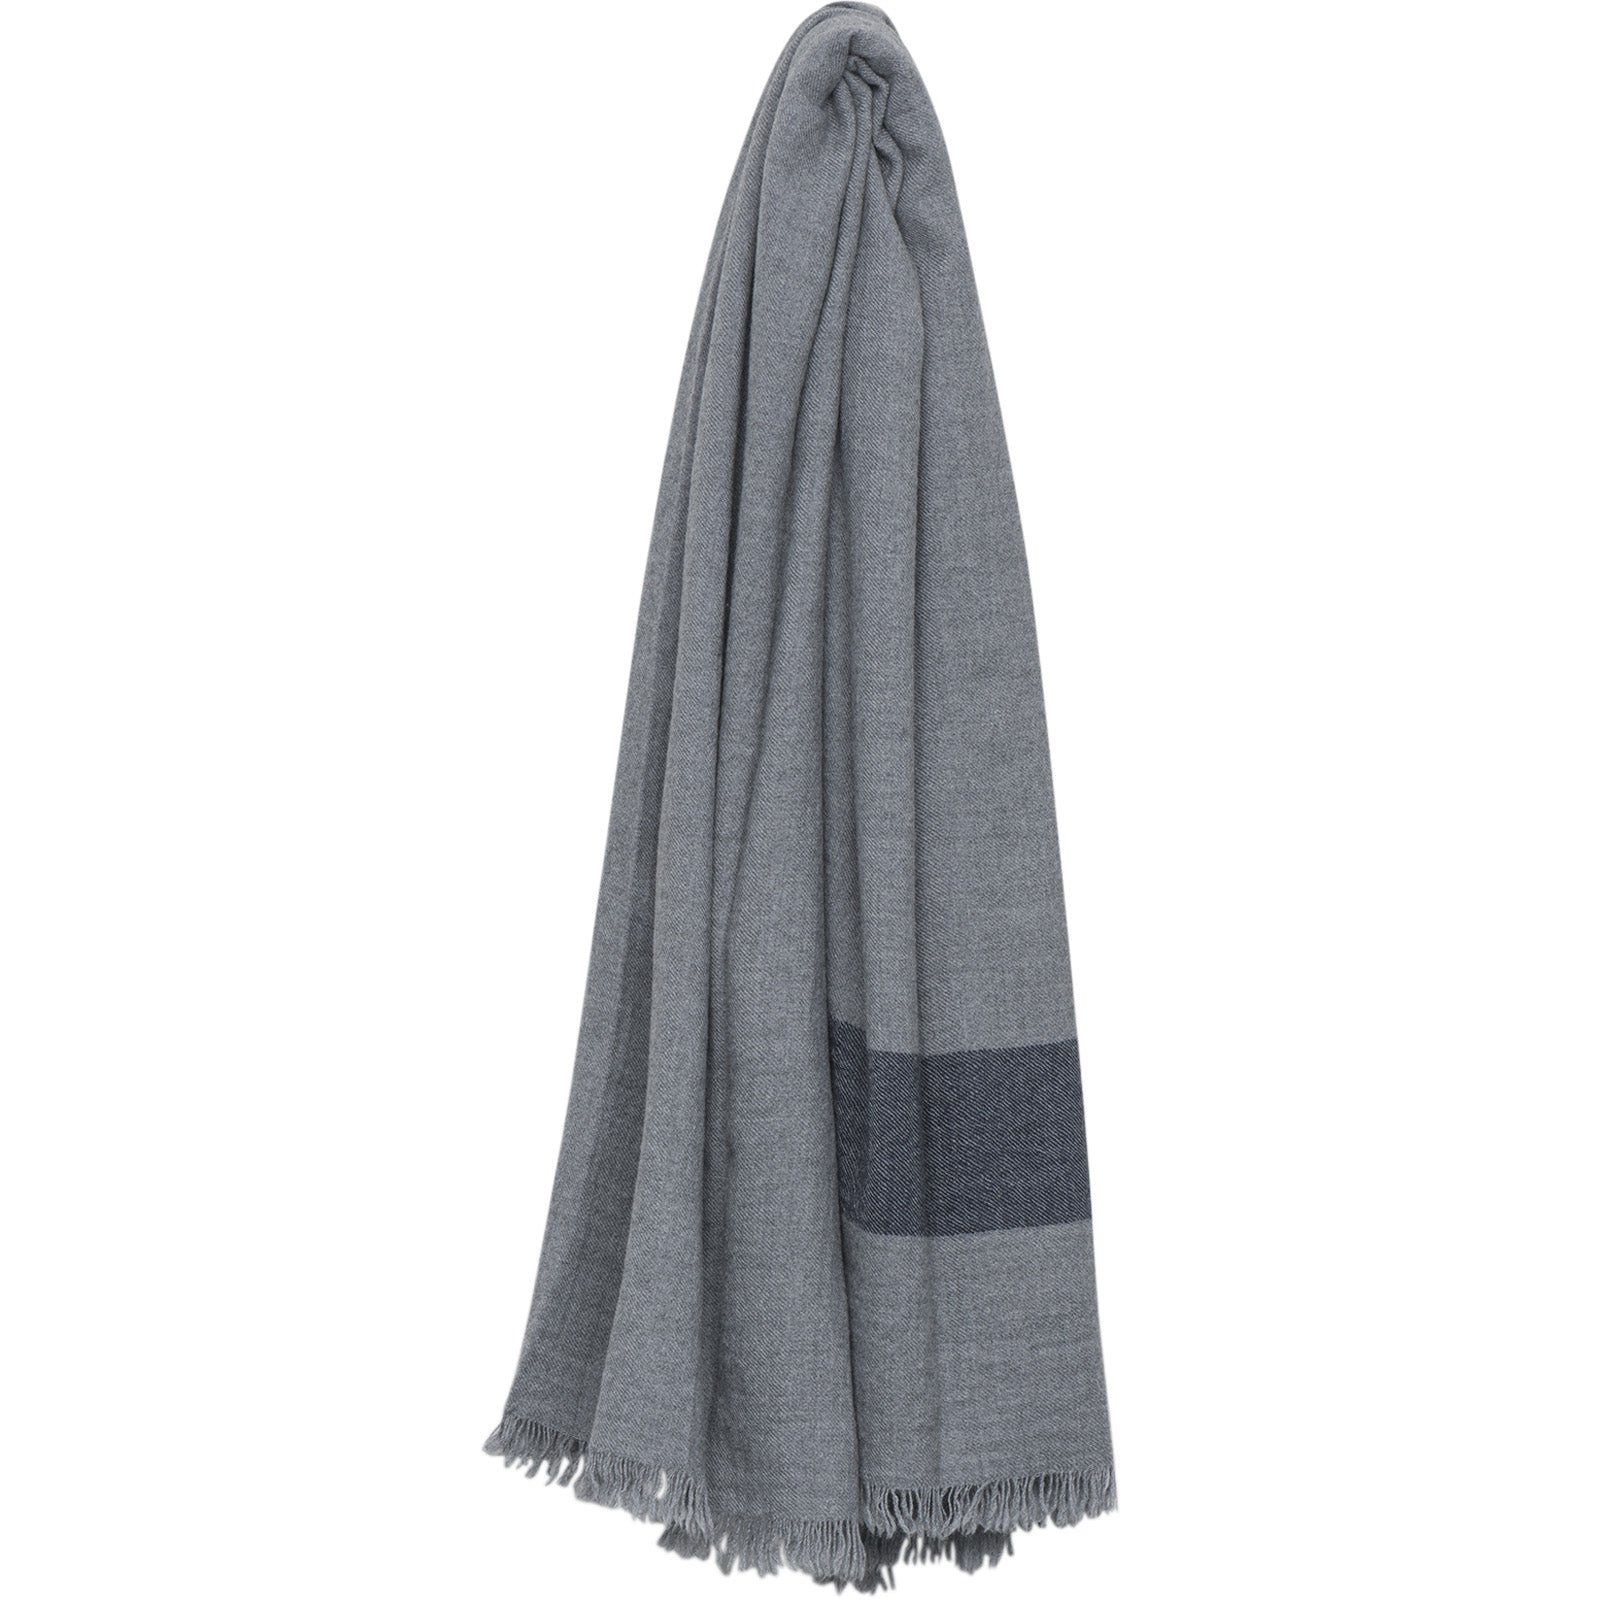 Urban Rona Washed Voyage Travel Throw